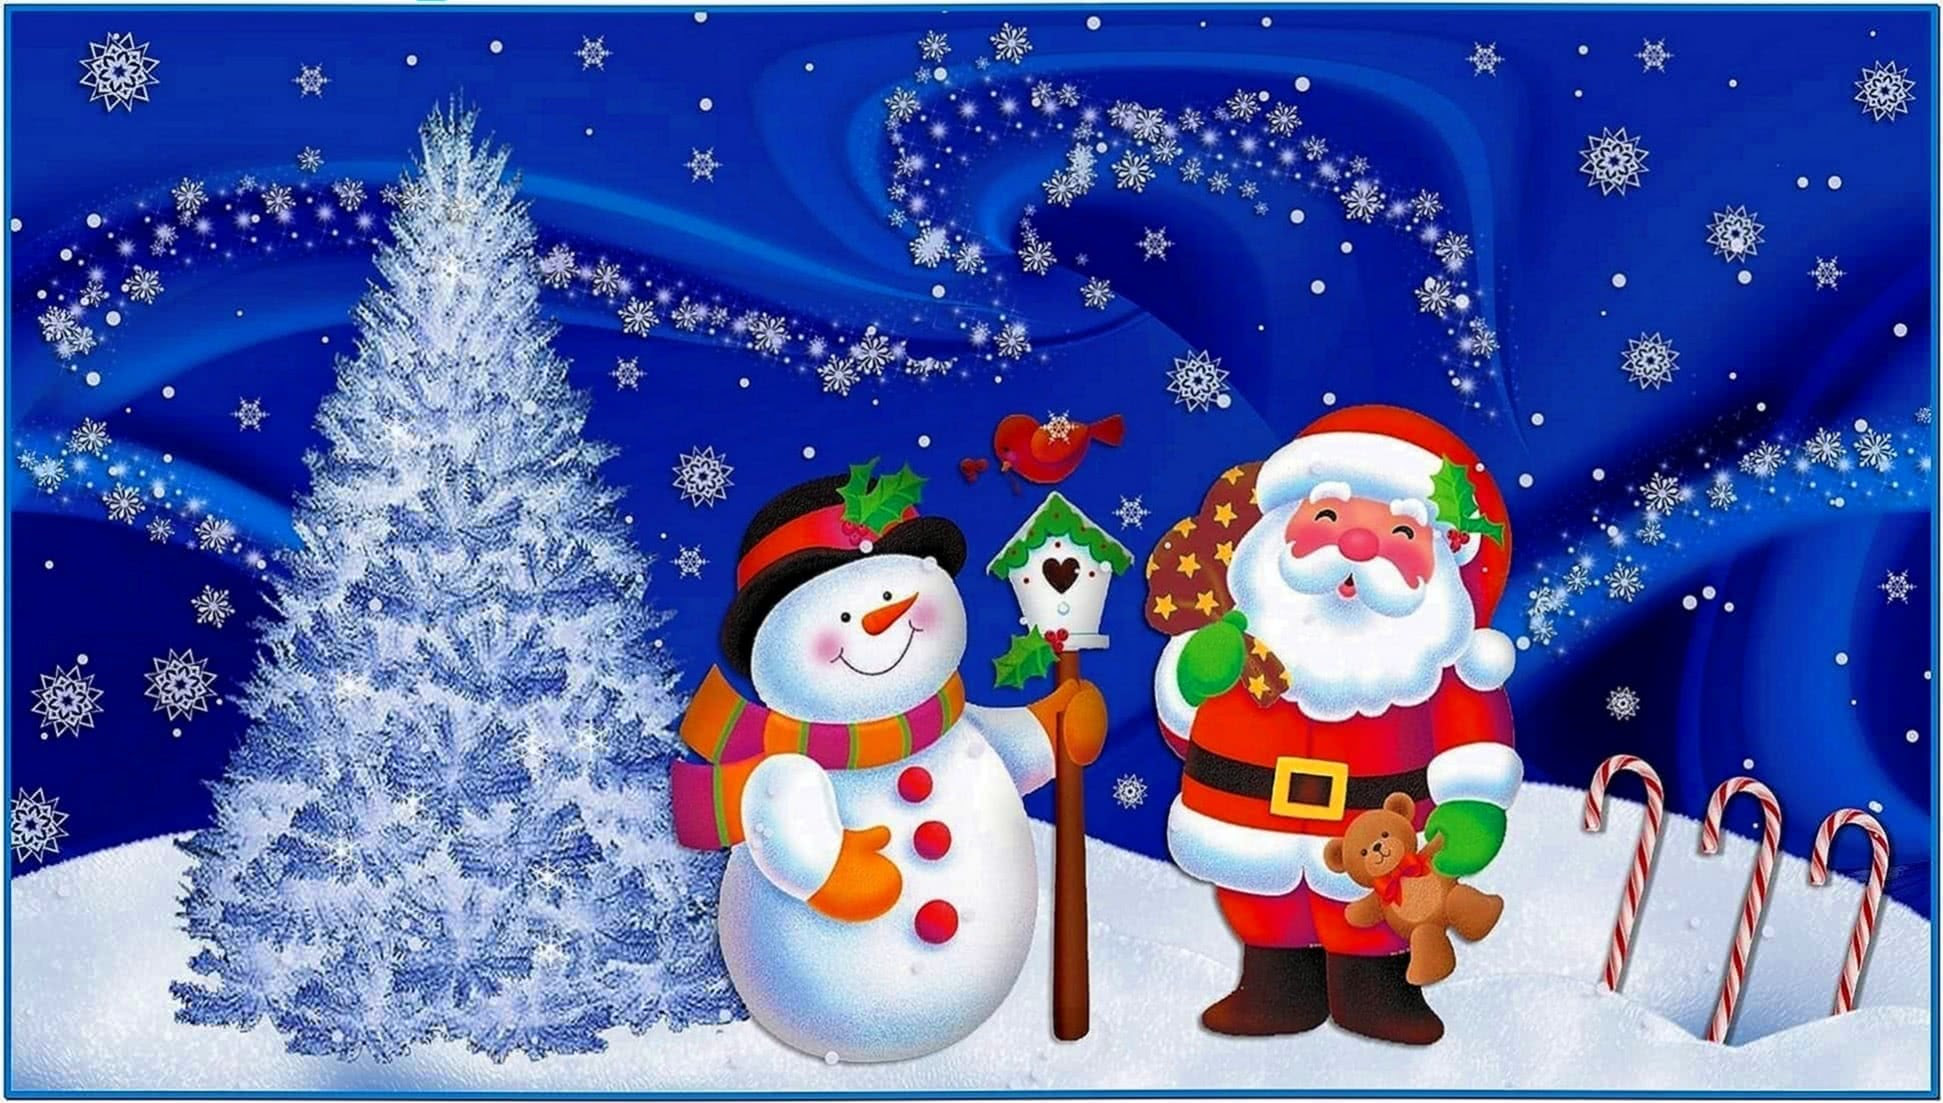 Christmas wallpapers and screensavers - Download free